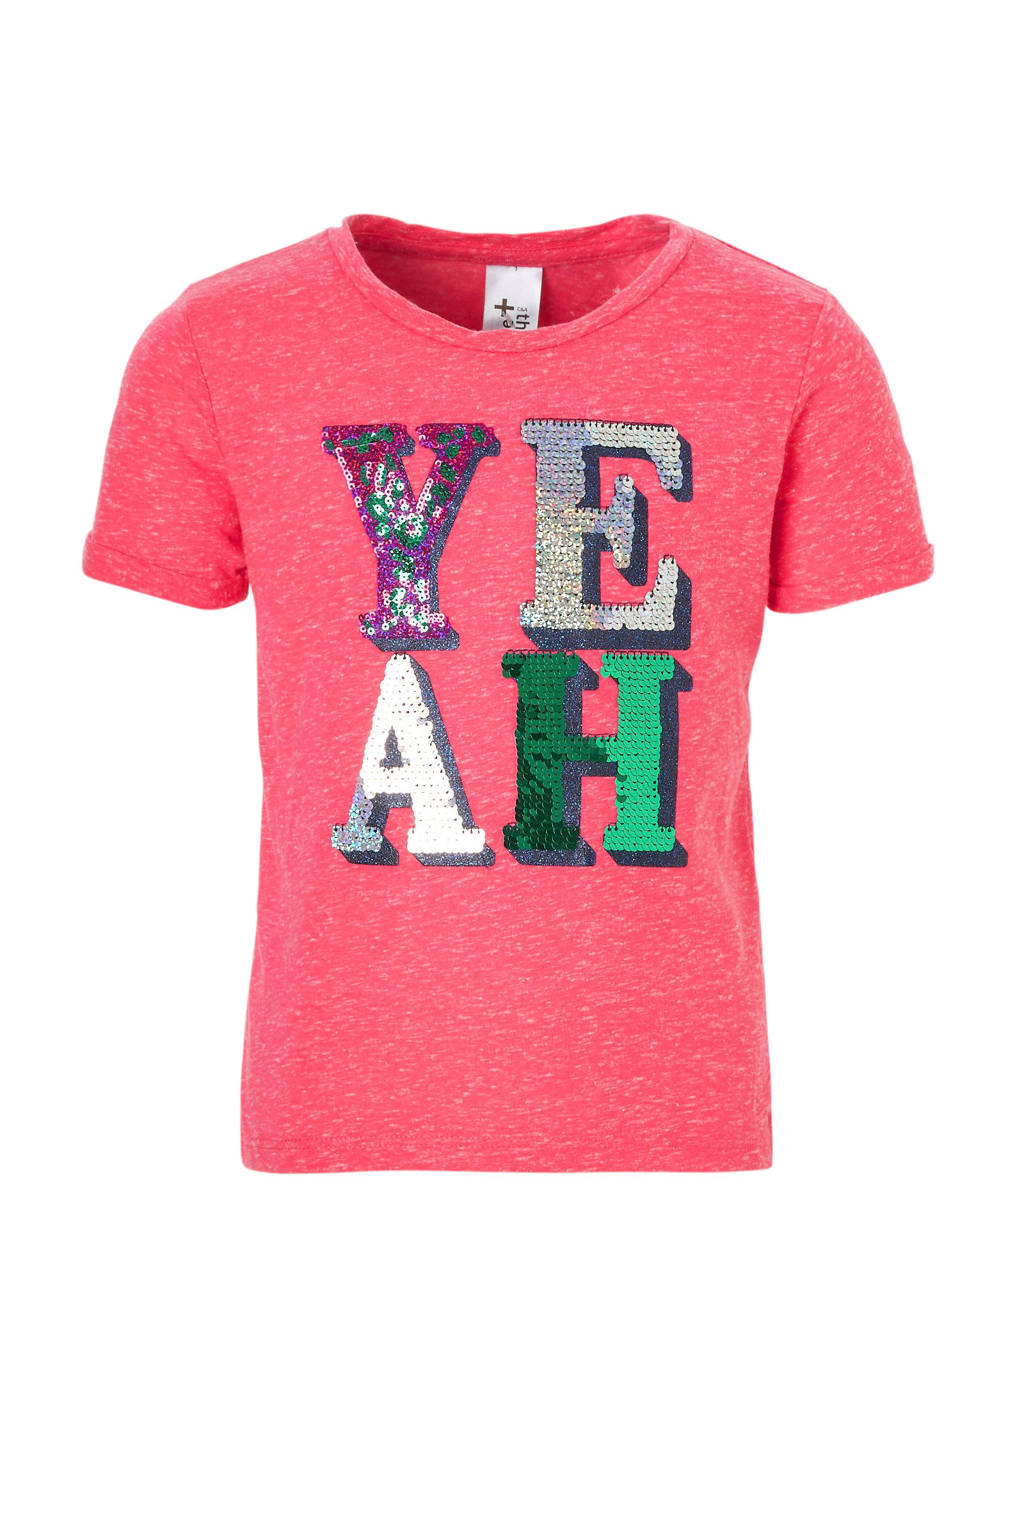 C&A Here & There T-shirt met pailletten roze, Roze